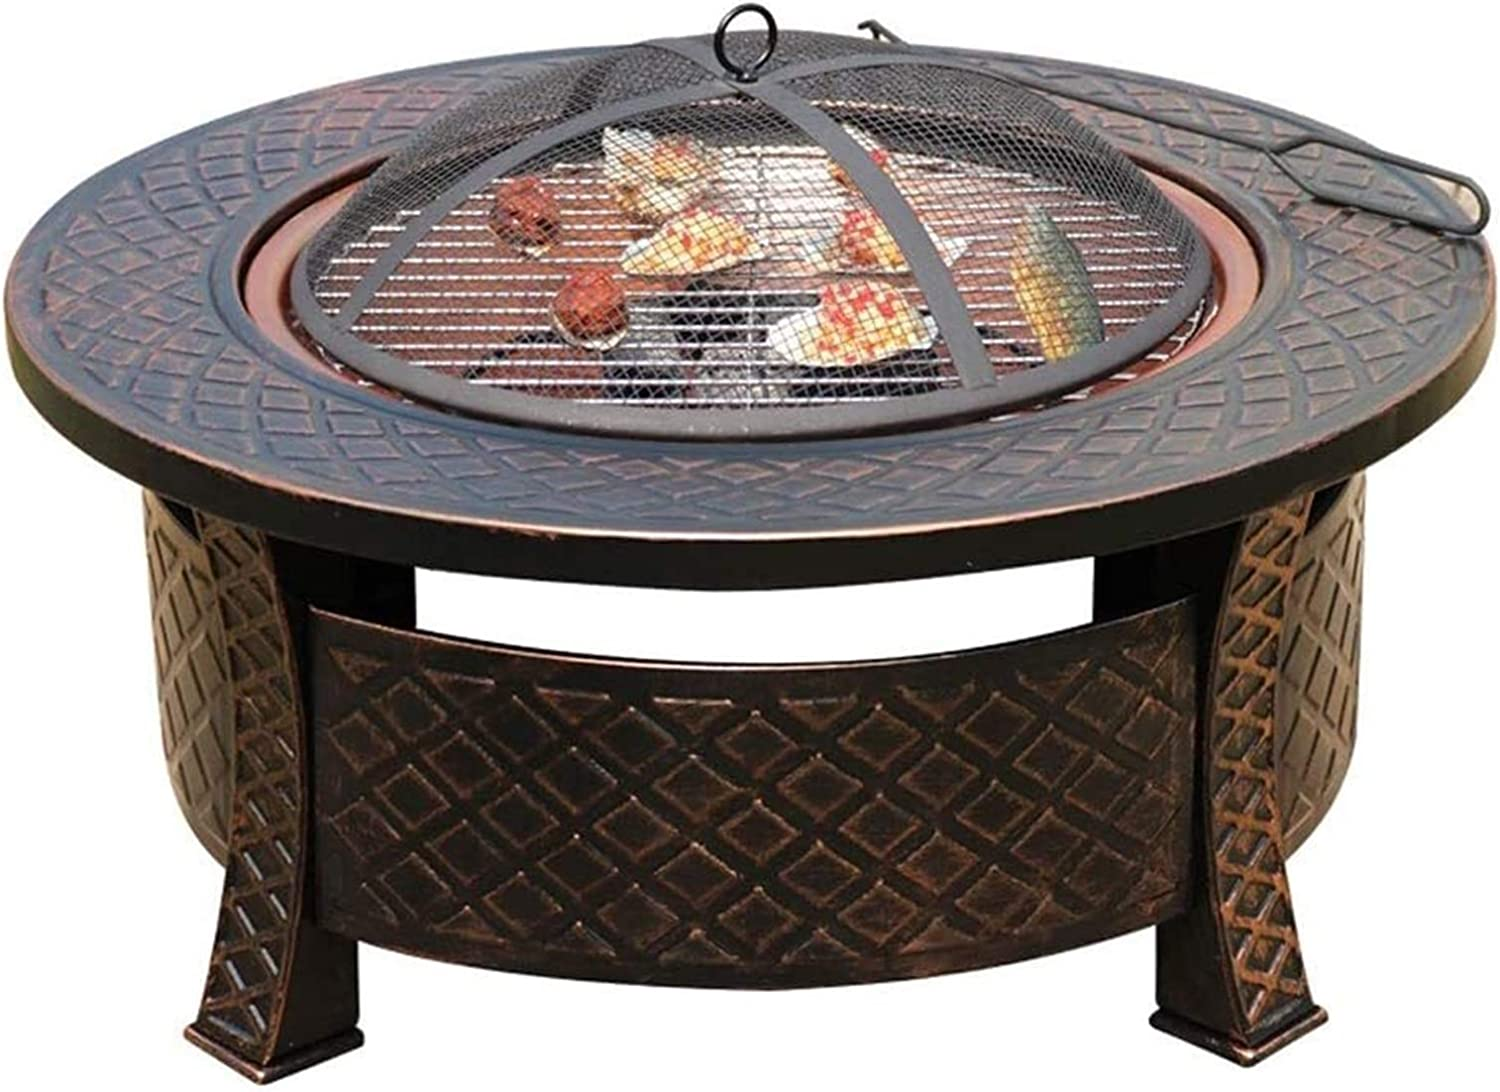 ZSEFV Outdoor San Jose Mall Fire Pits Large special price Sp Pit with Round